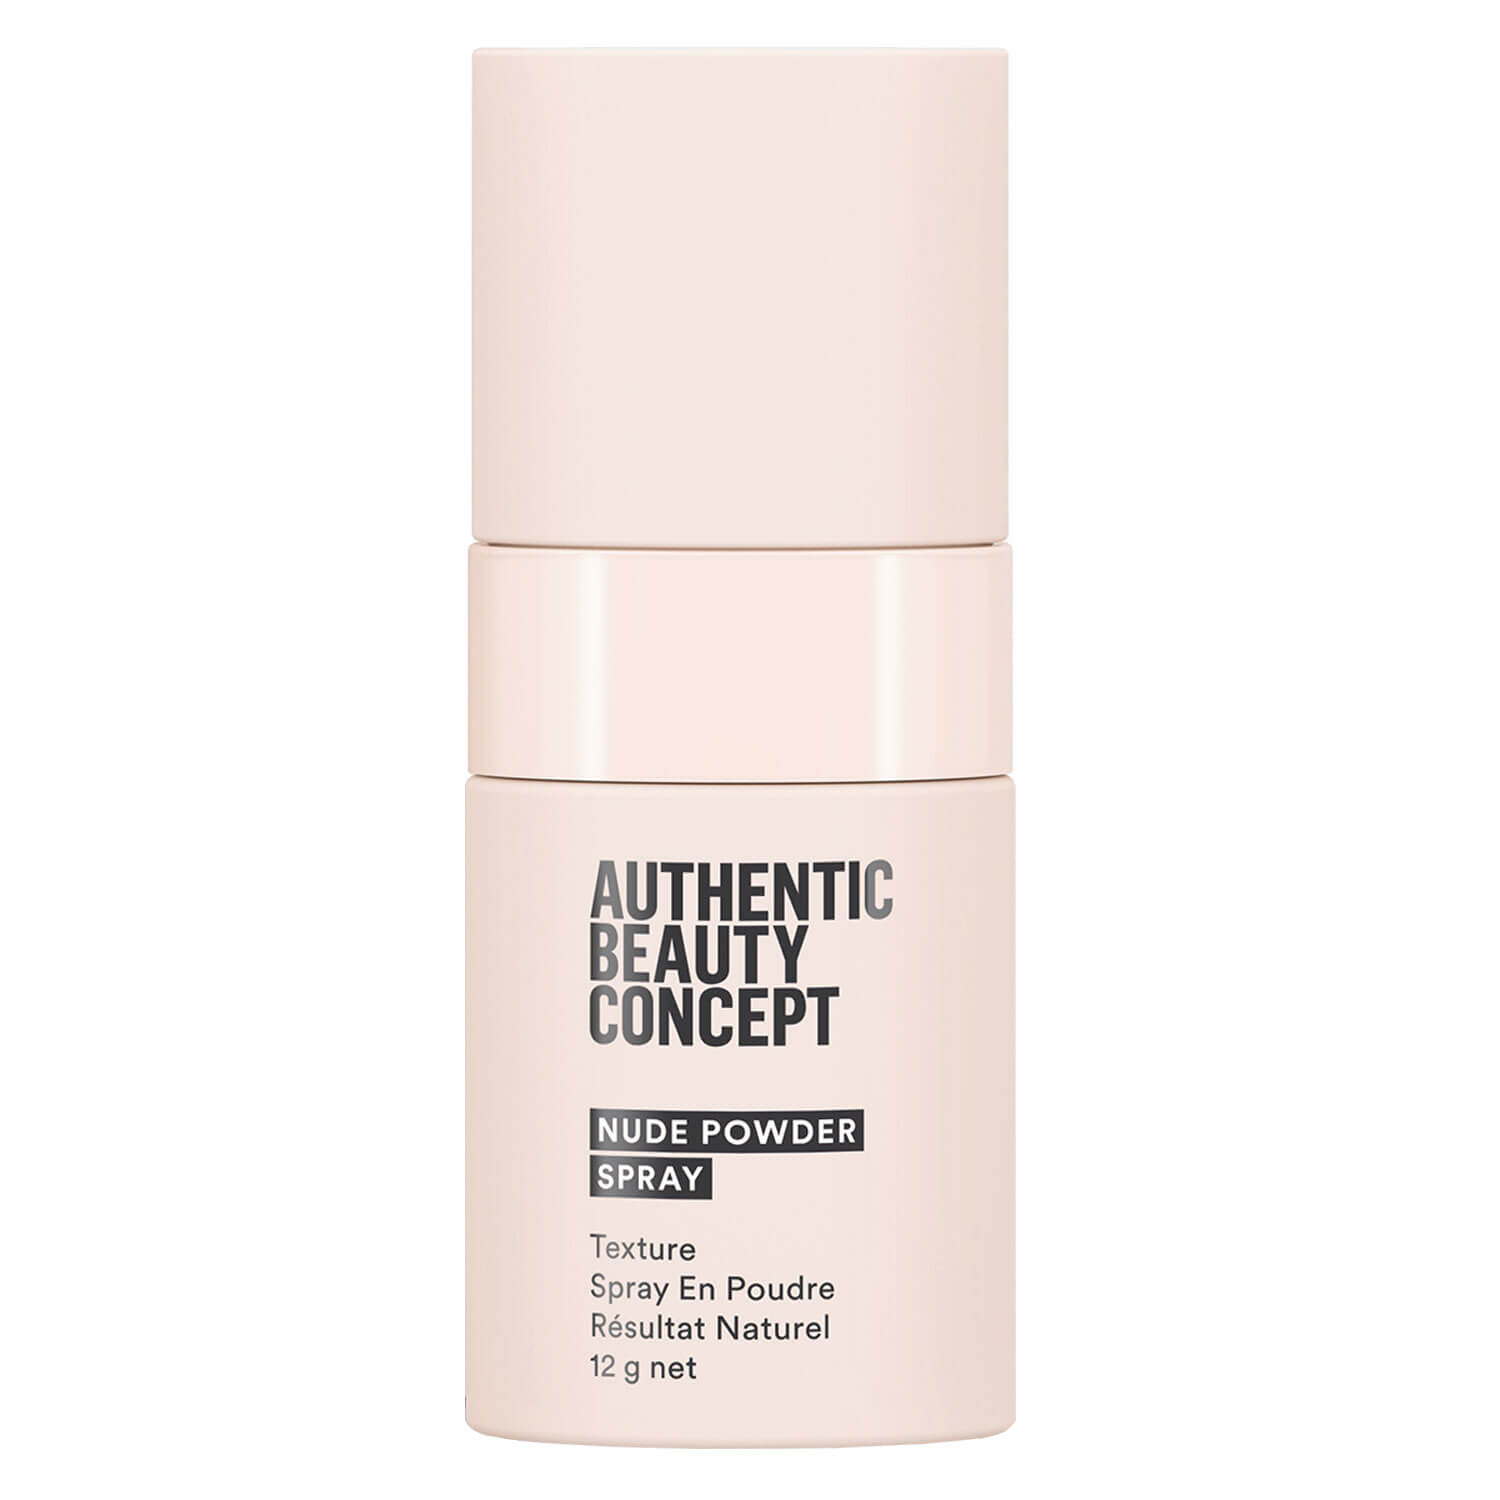 Authentic Beauty Concept - Nude Powder Spray